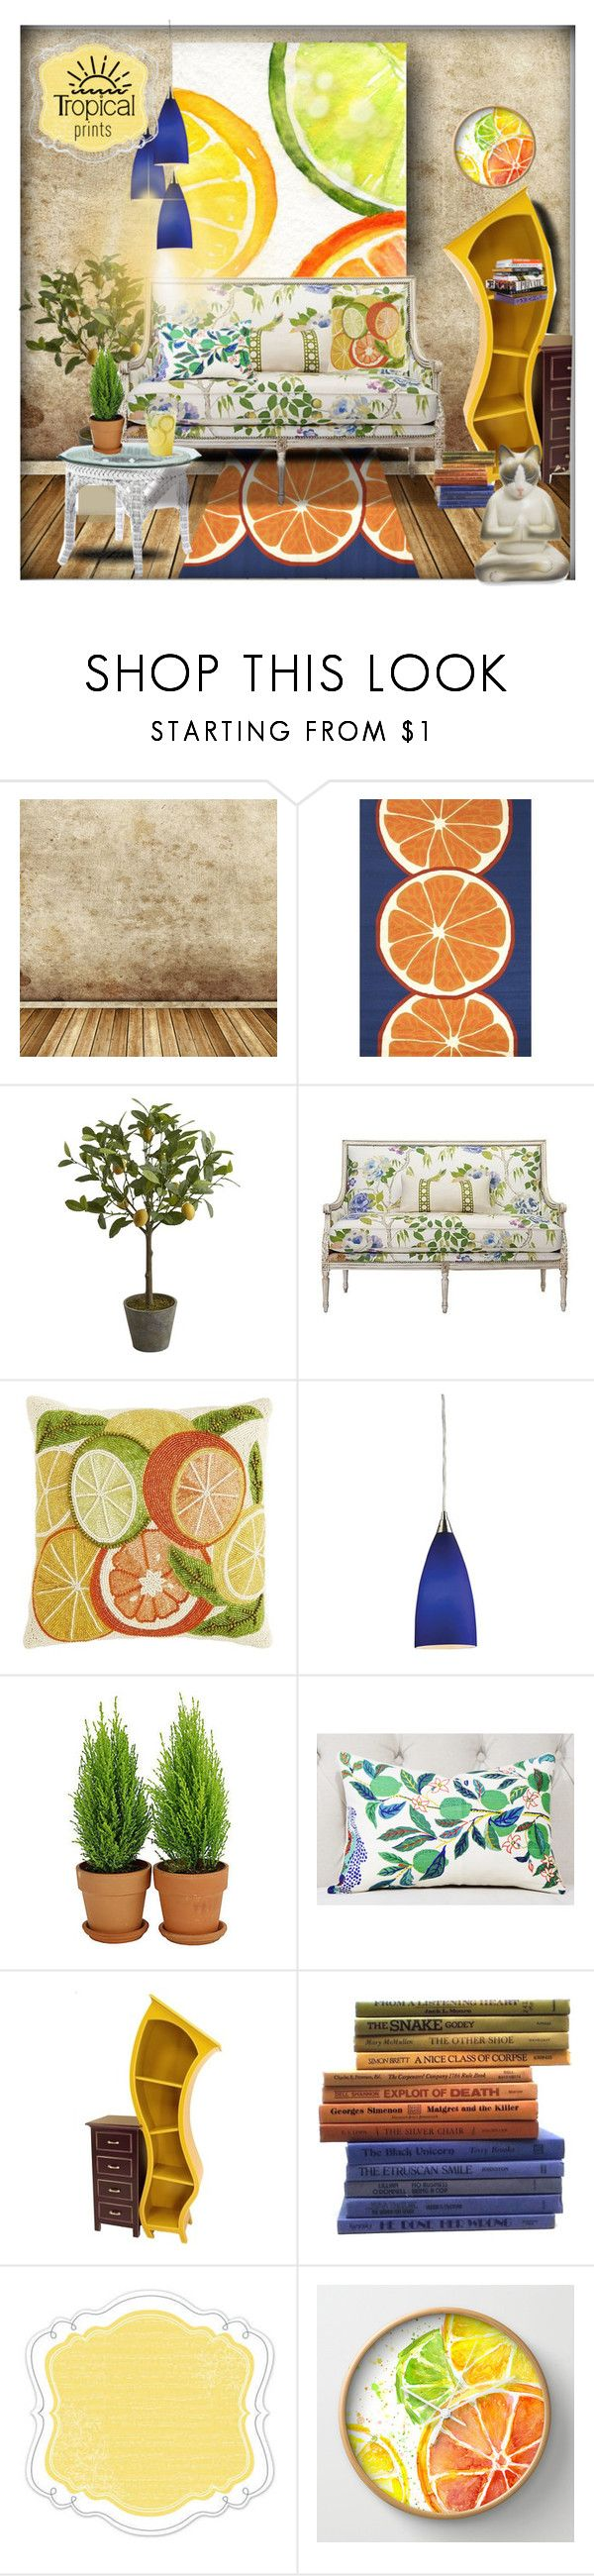 """""""Lemon room"""" by latinaconestilo ❤ liked on Polyvore featuring interior, interiors, interior design, home, home decor, interior decorating, Jaipur Living, Pier 1 Imports, Quality Ivy and Anna Sui"""